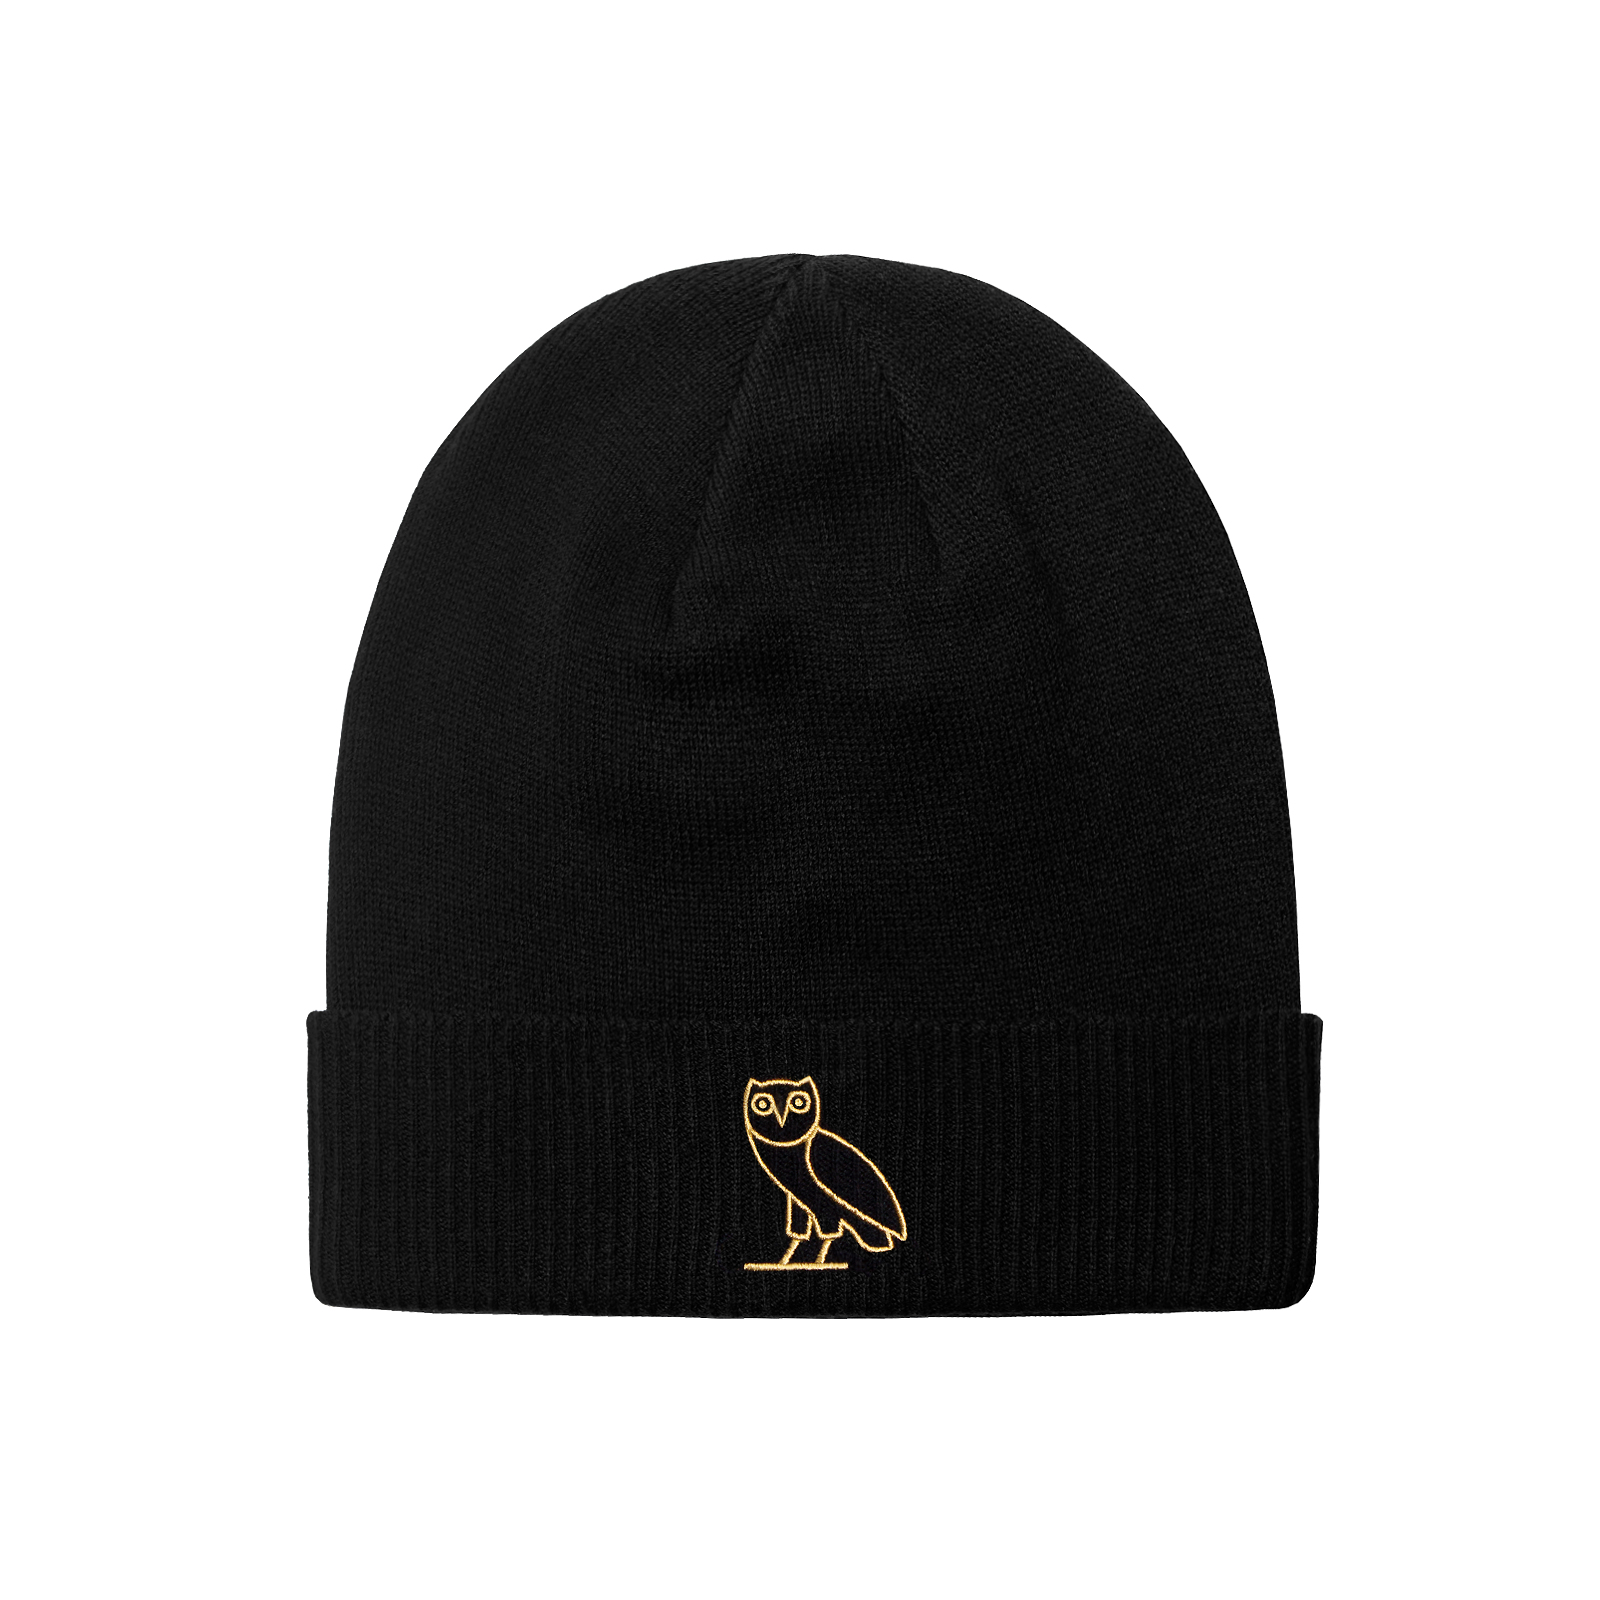 OVOJORDAN_BLACK_TOQUE_BACK.png